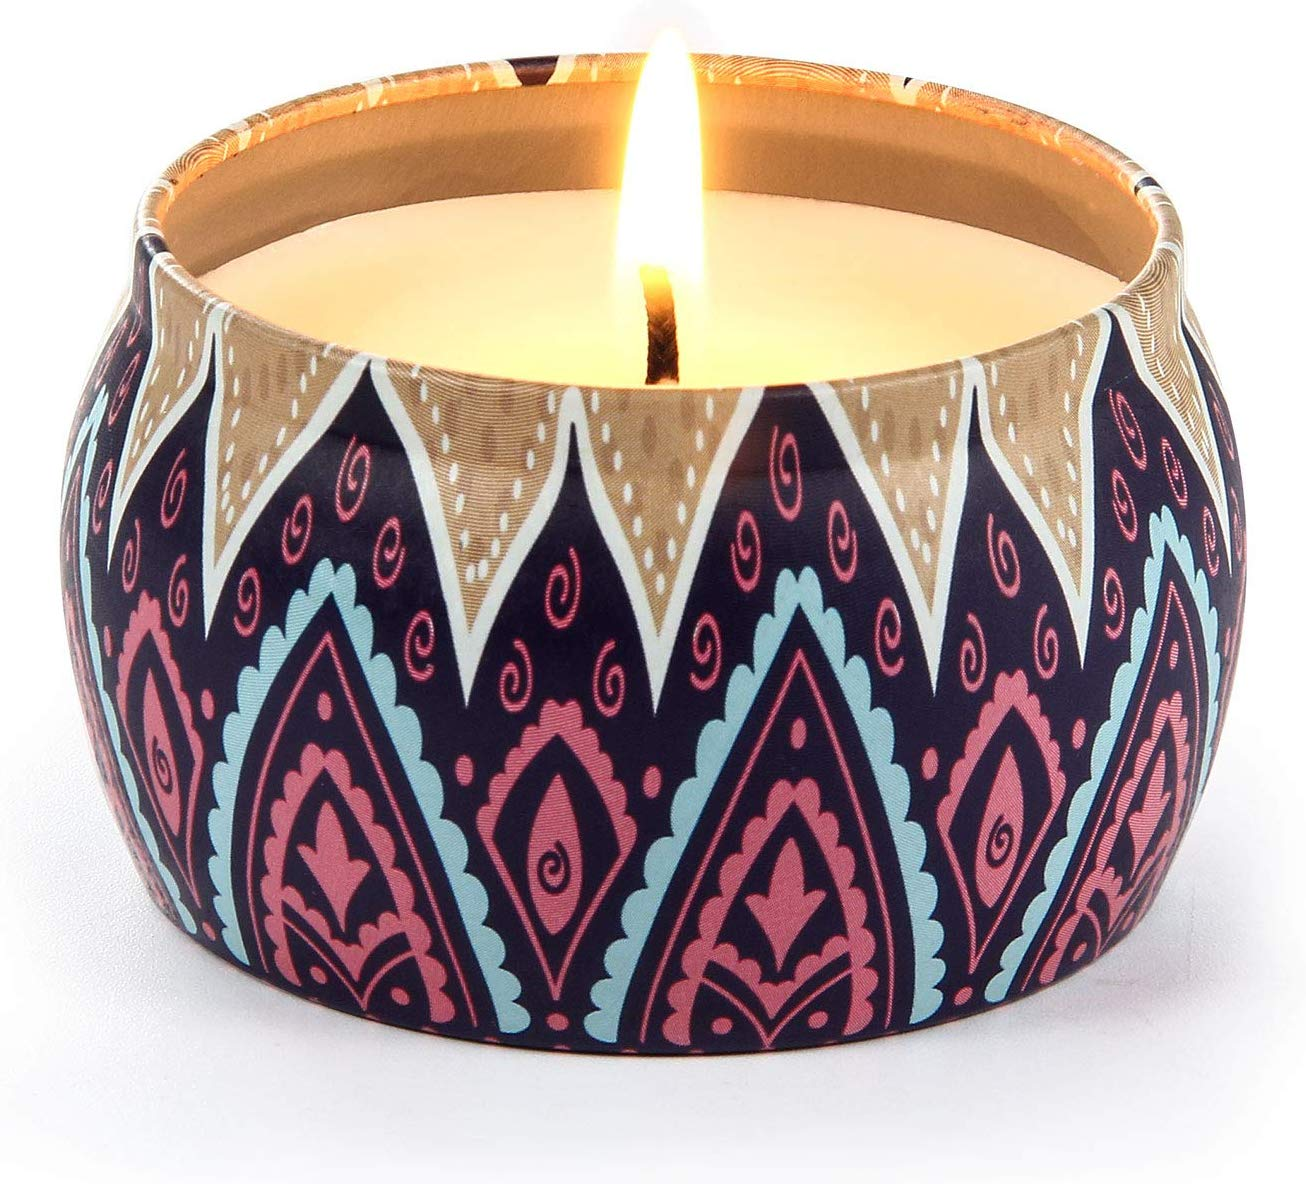 OUSMIN Candle Scented Candles, 4 Oz, Only 1 pcs £4.99 Delivered